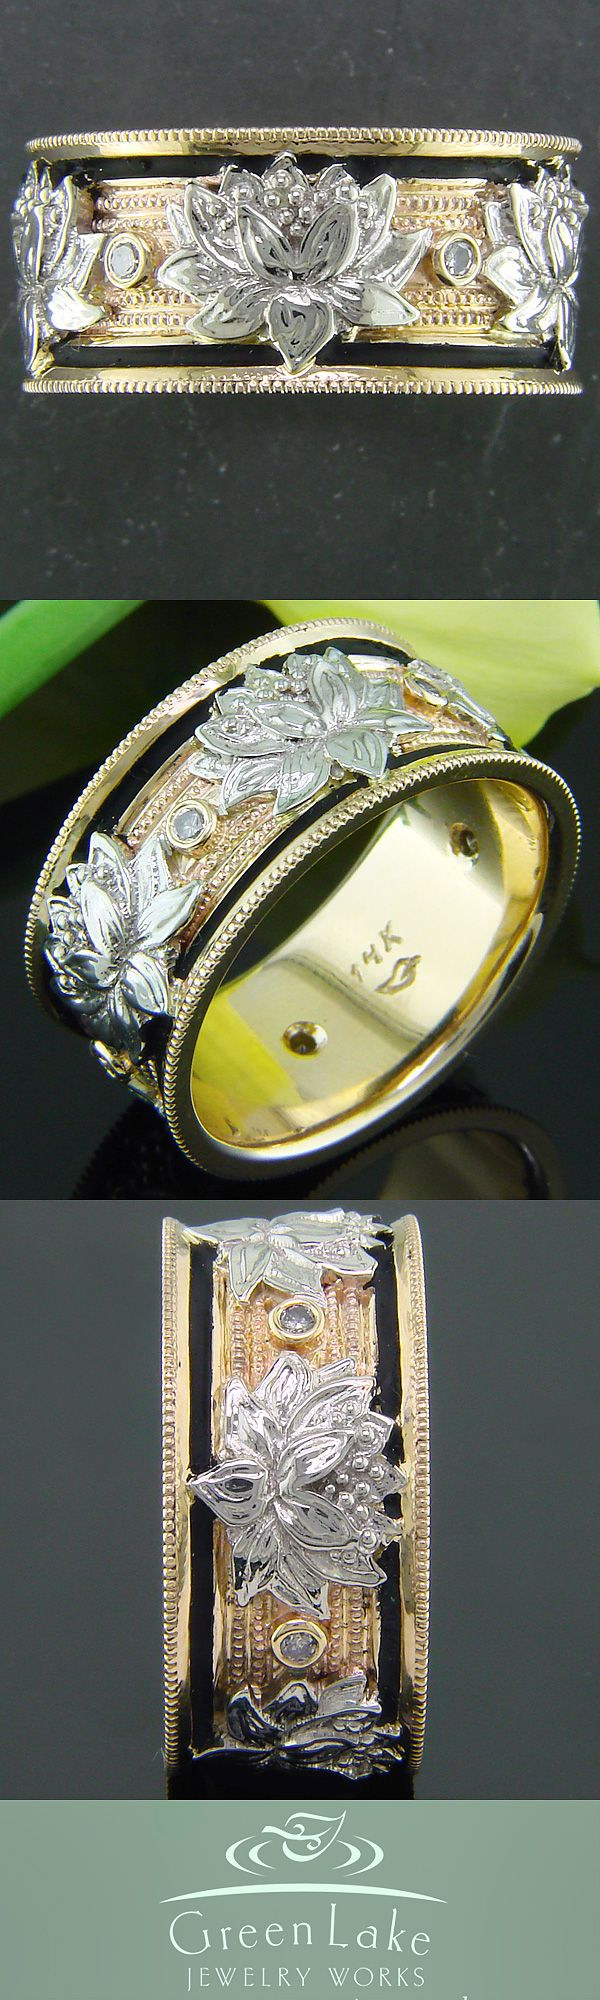 #GreenLakeMade hand carved yellow and white gold lotus band with diamonds. #Ido